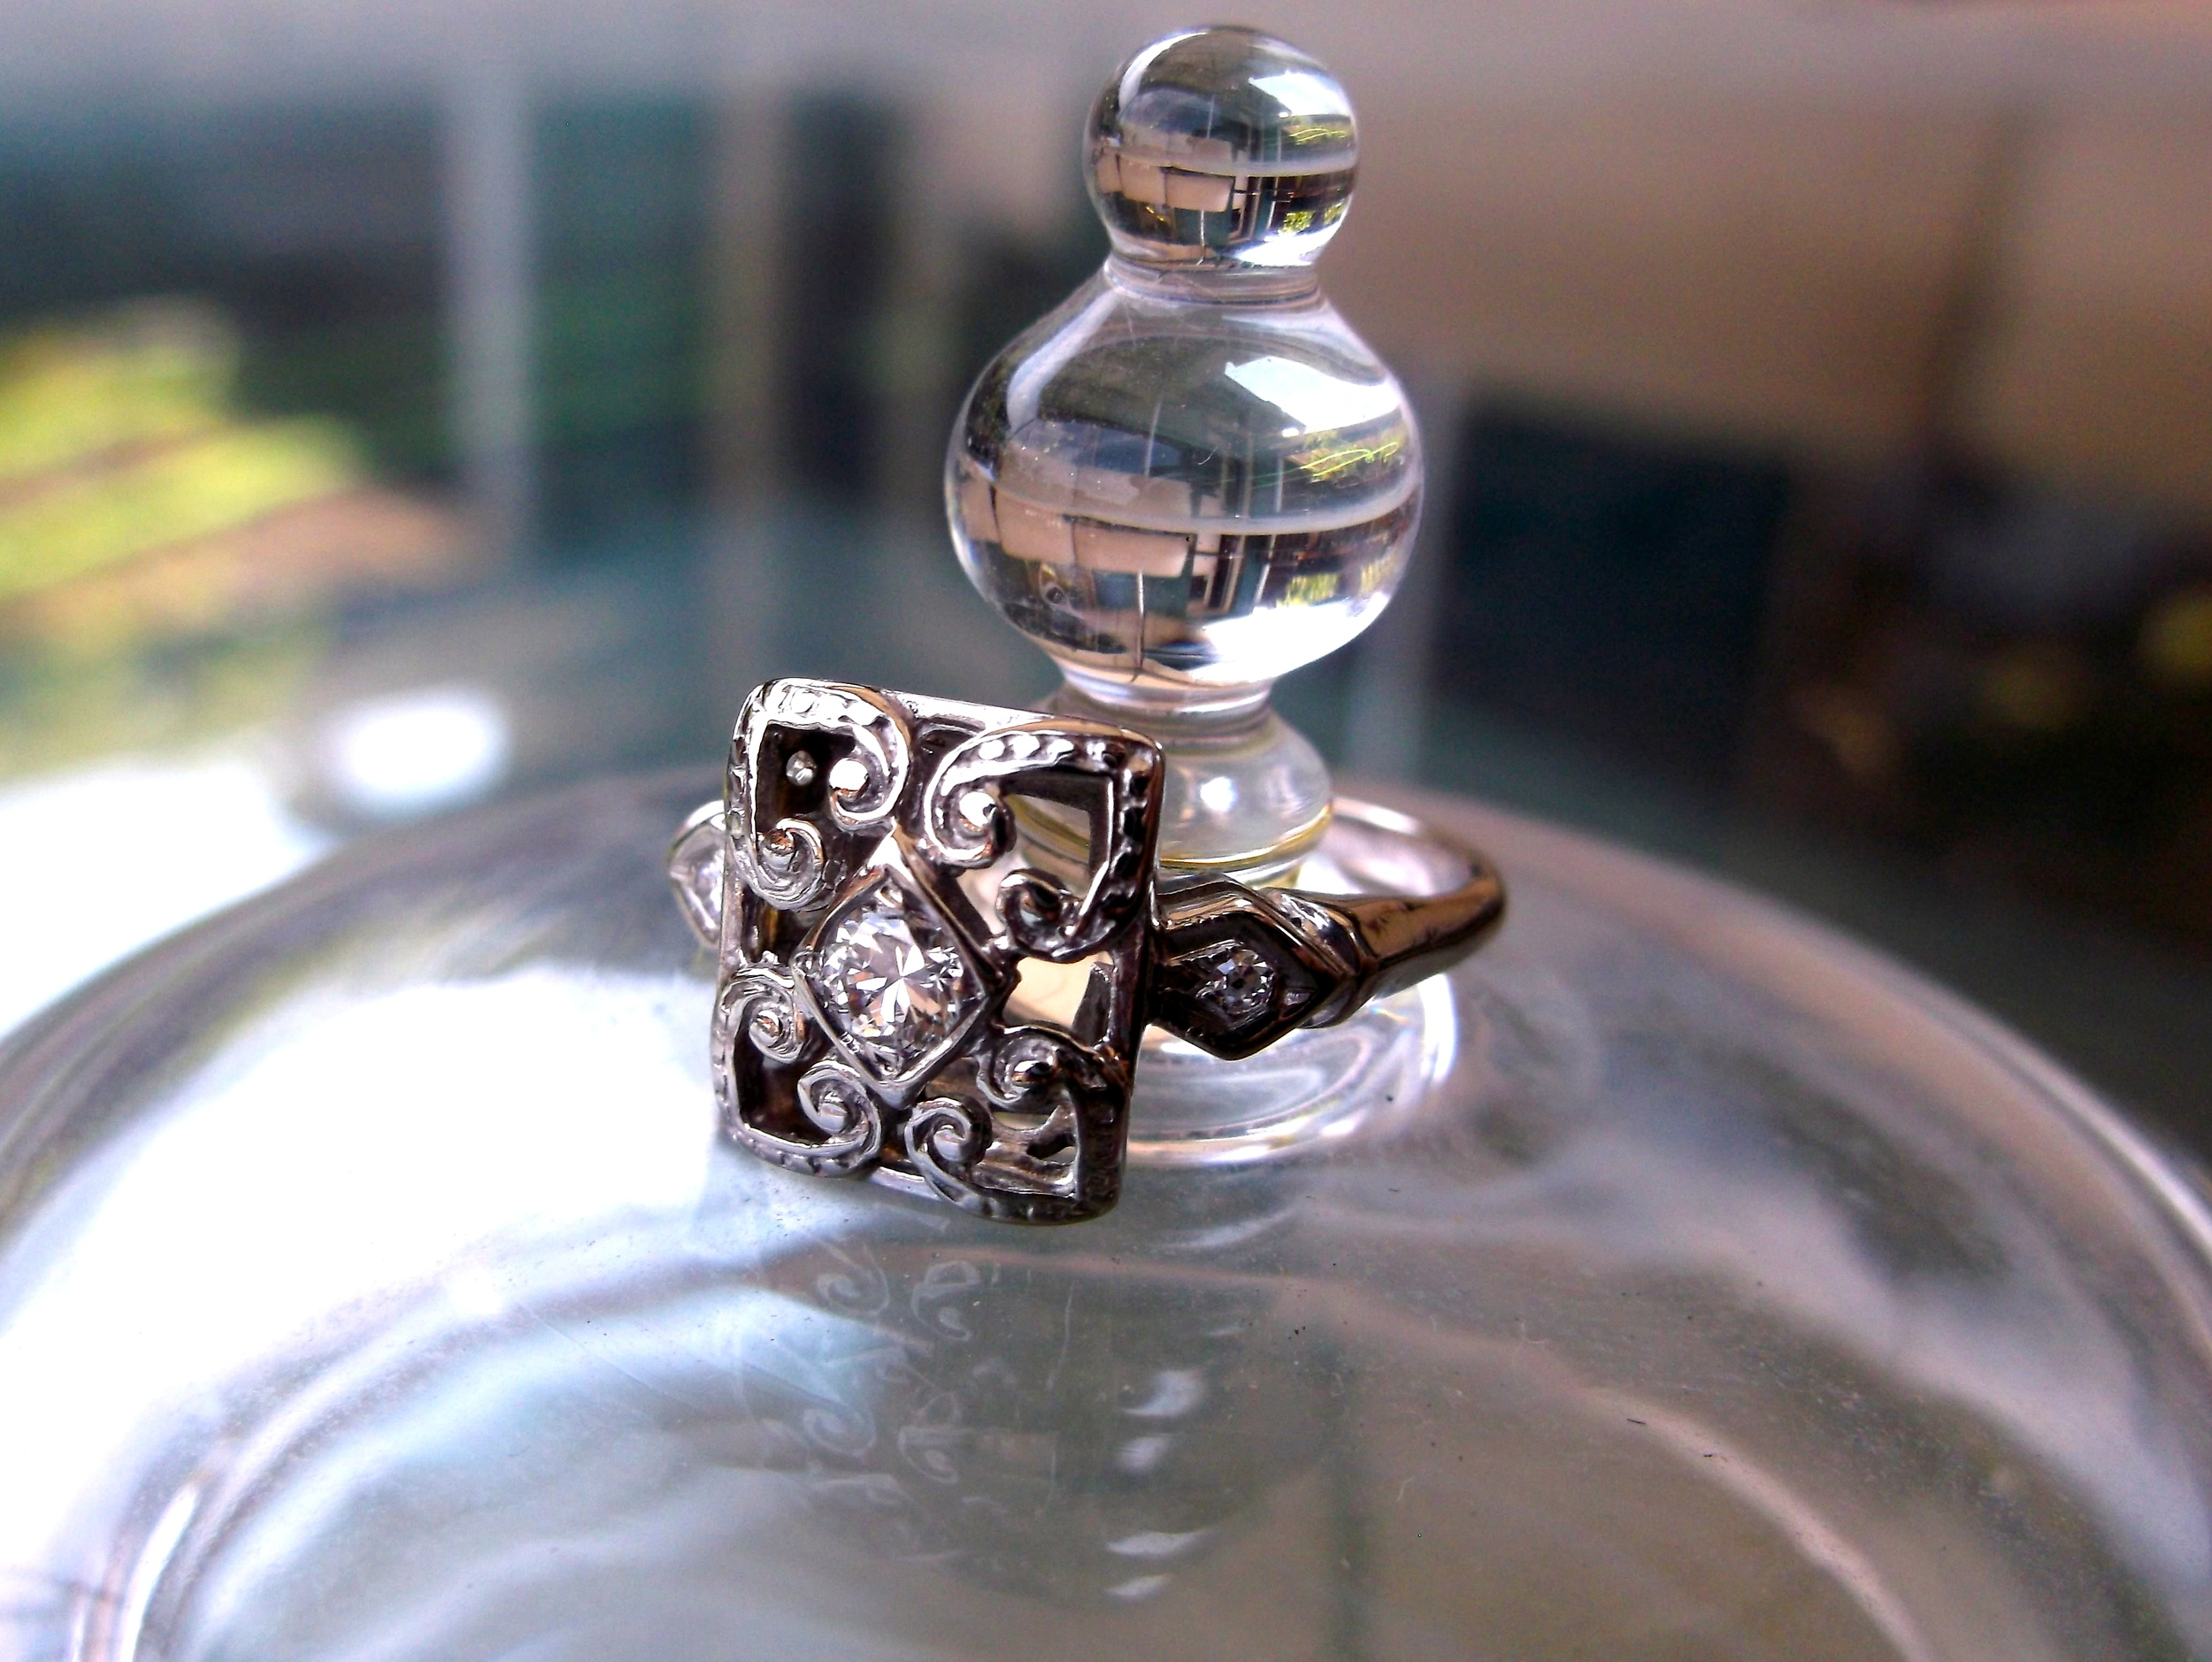 SOLD - Sweet Art Deco ring with a 0.10 carat Old European cut diamond in the center set in white gold.